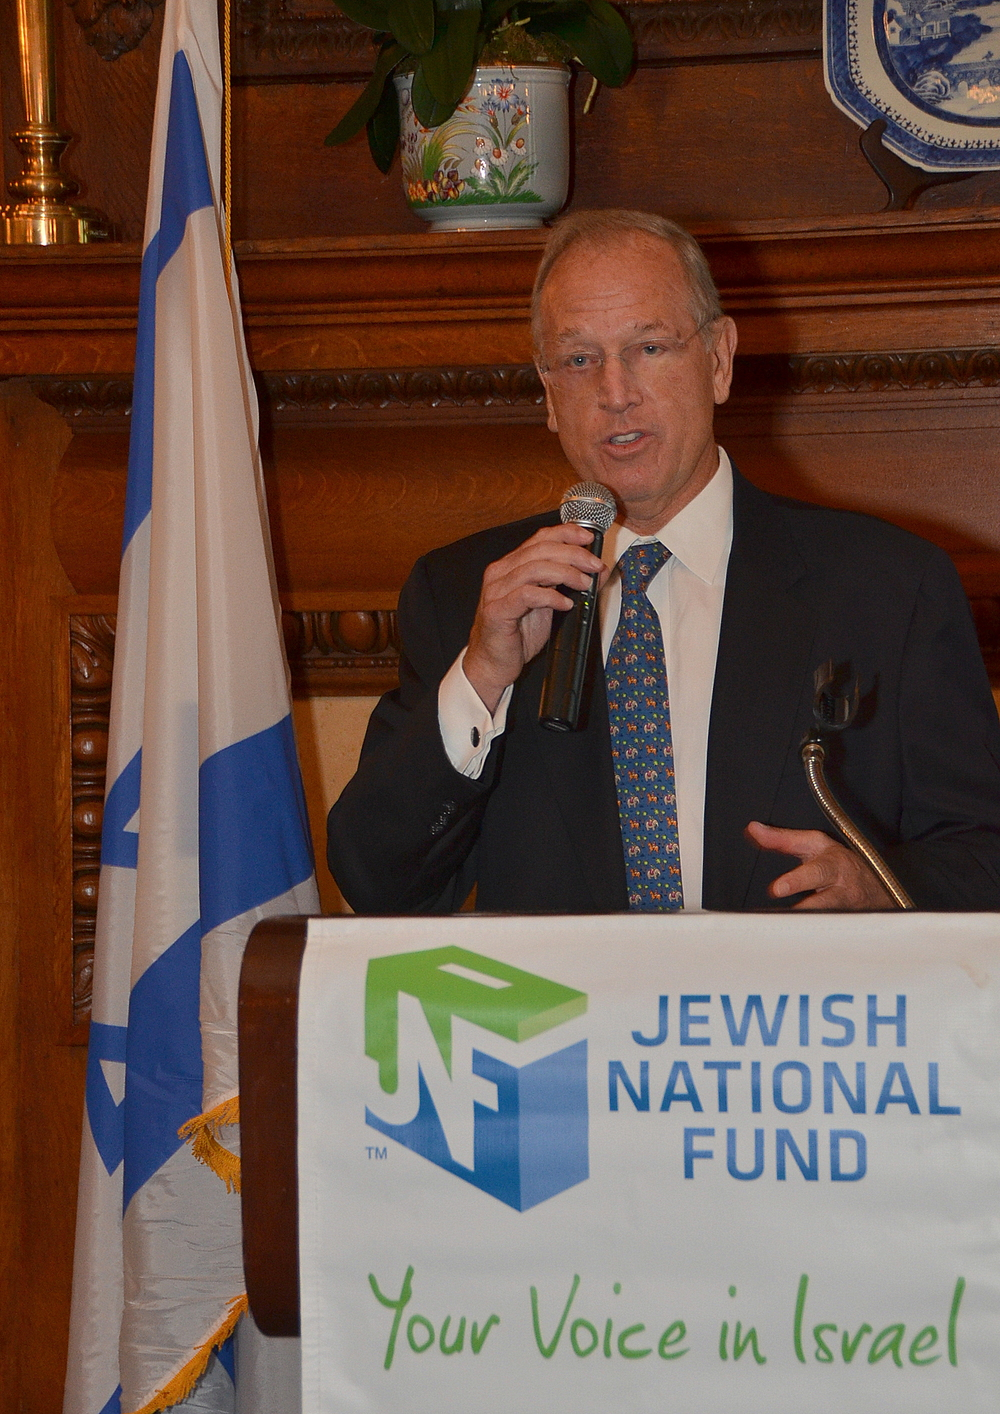 Click photo to download. Caption: Jeffrey Levine speaks at a Sept. 17 event in New York during which he was welcome as the new national president of the Jewish National Fund. Credit: Maxine Dovere.